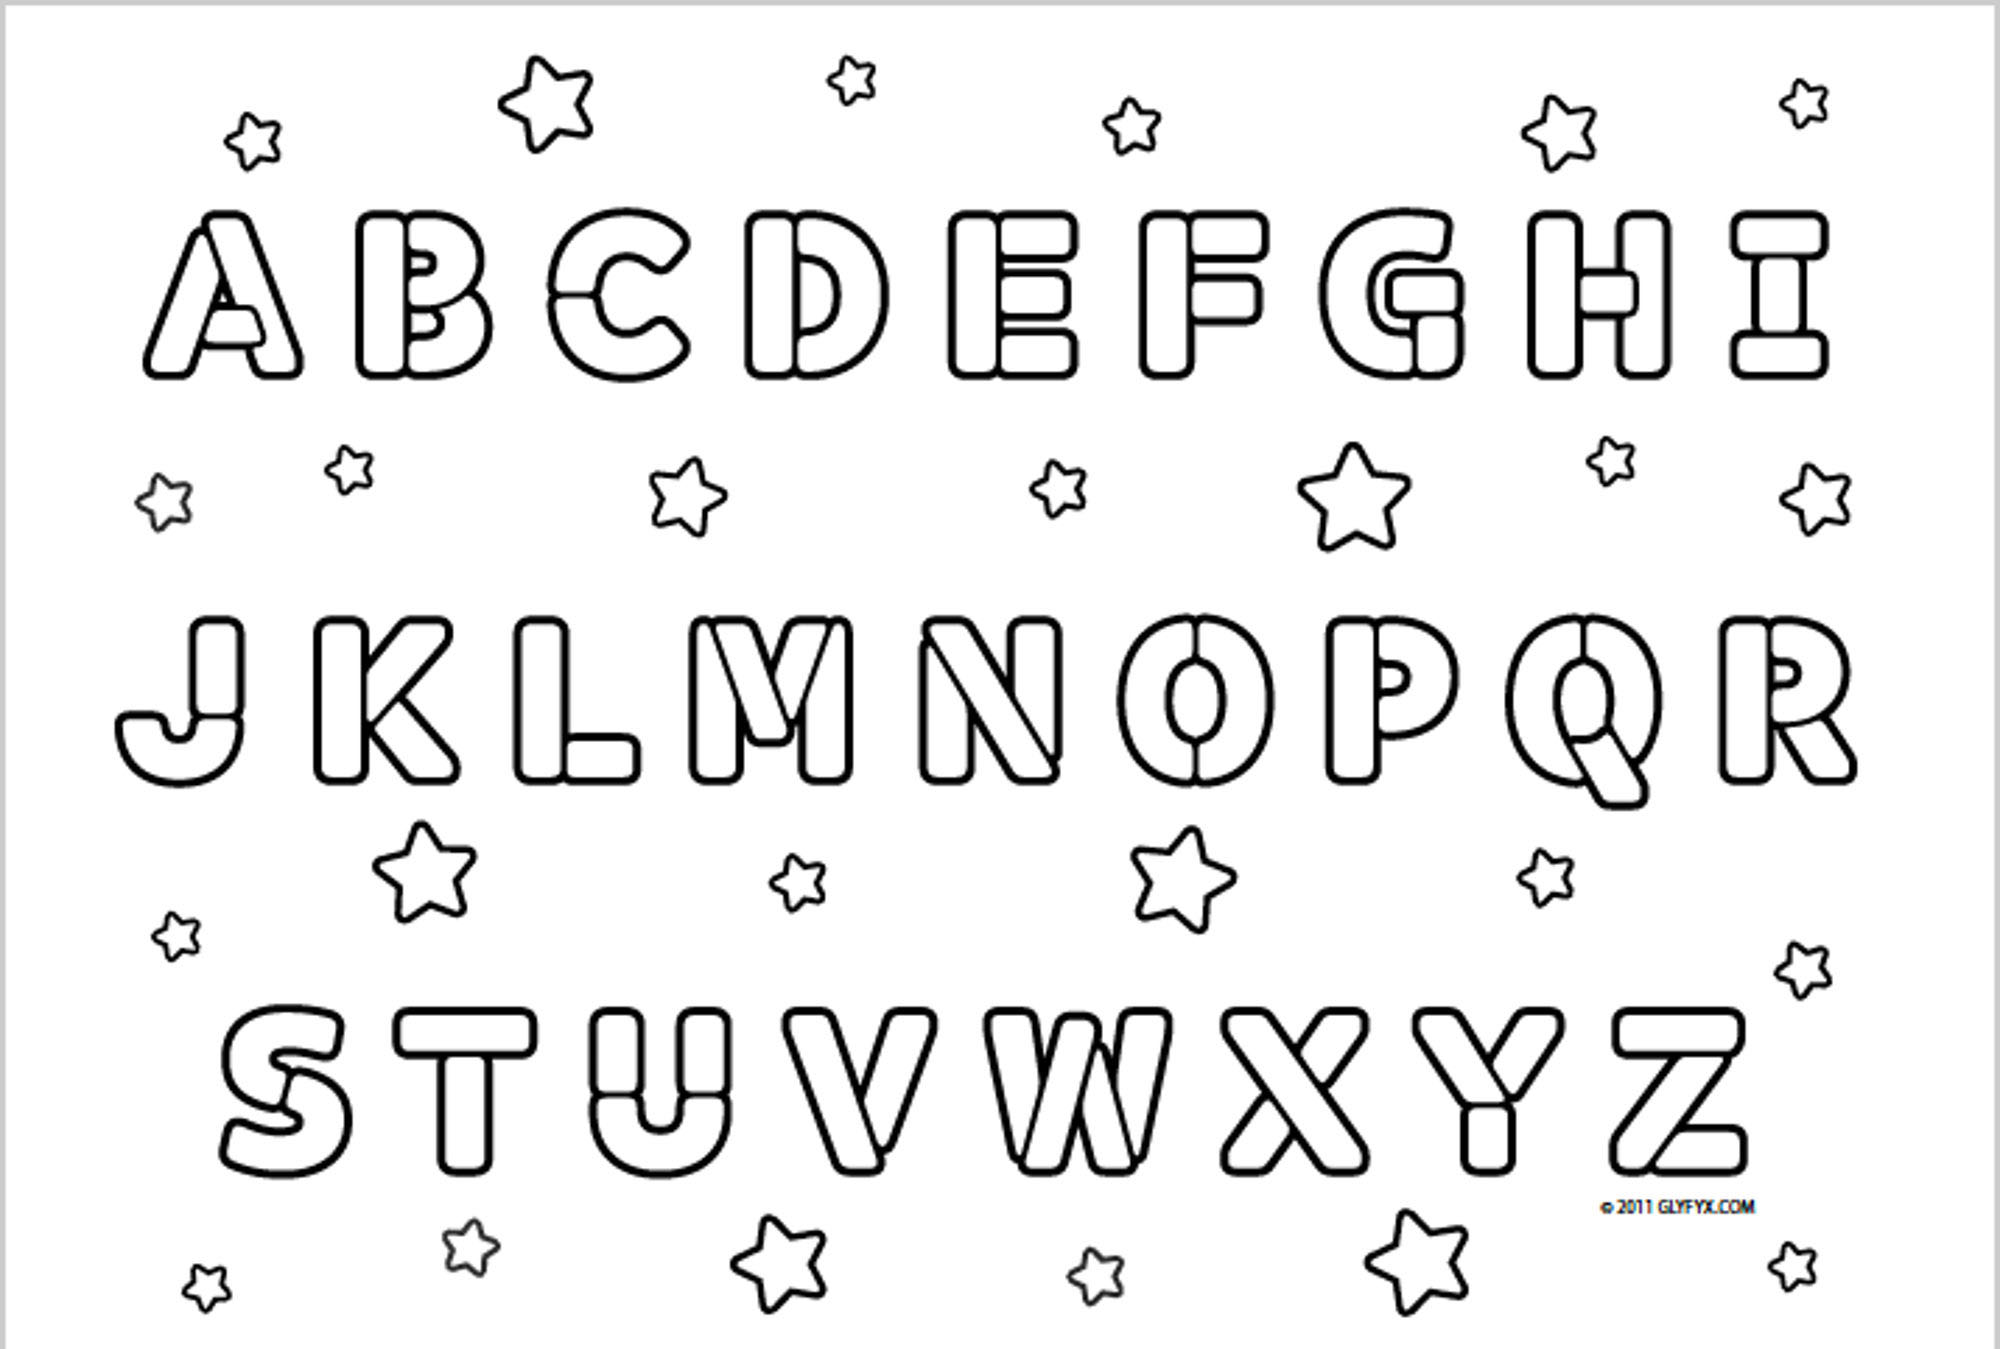 Al alphabet colouring worksheets for kindergarten - Abc Printable Coloring Pages Coloring Pages For All Ages